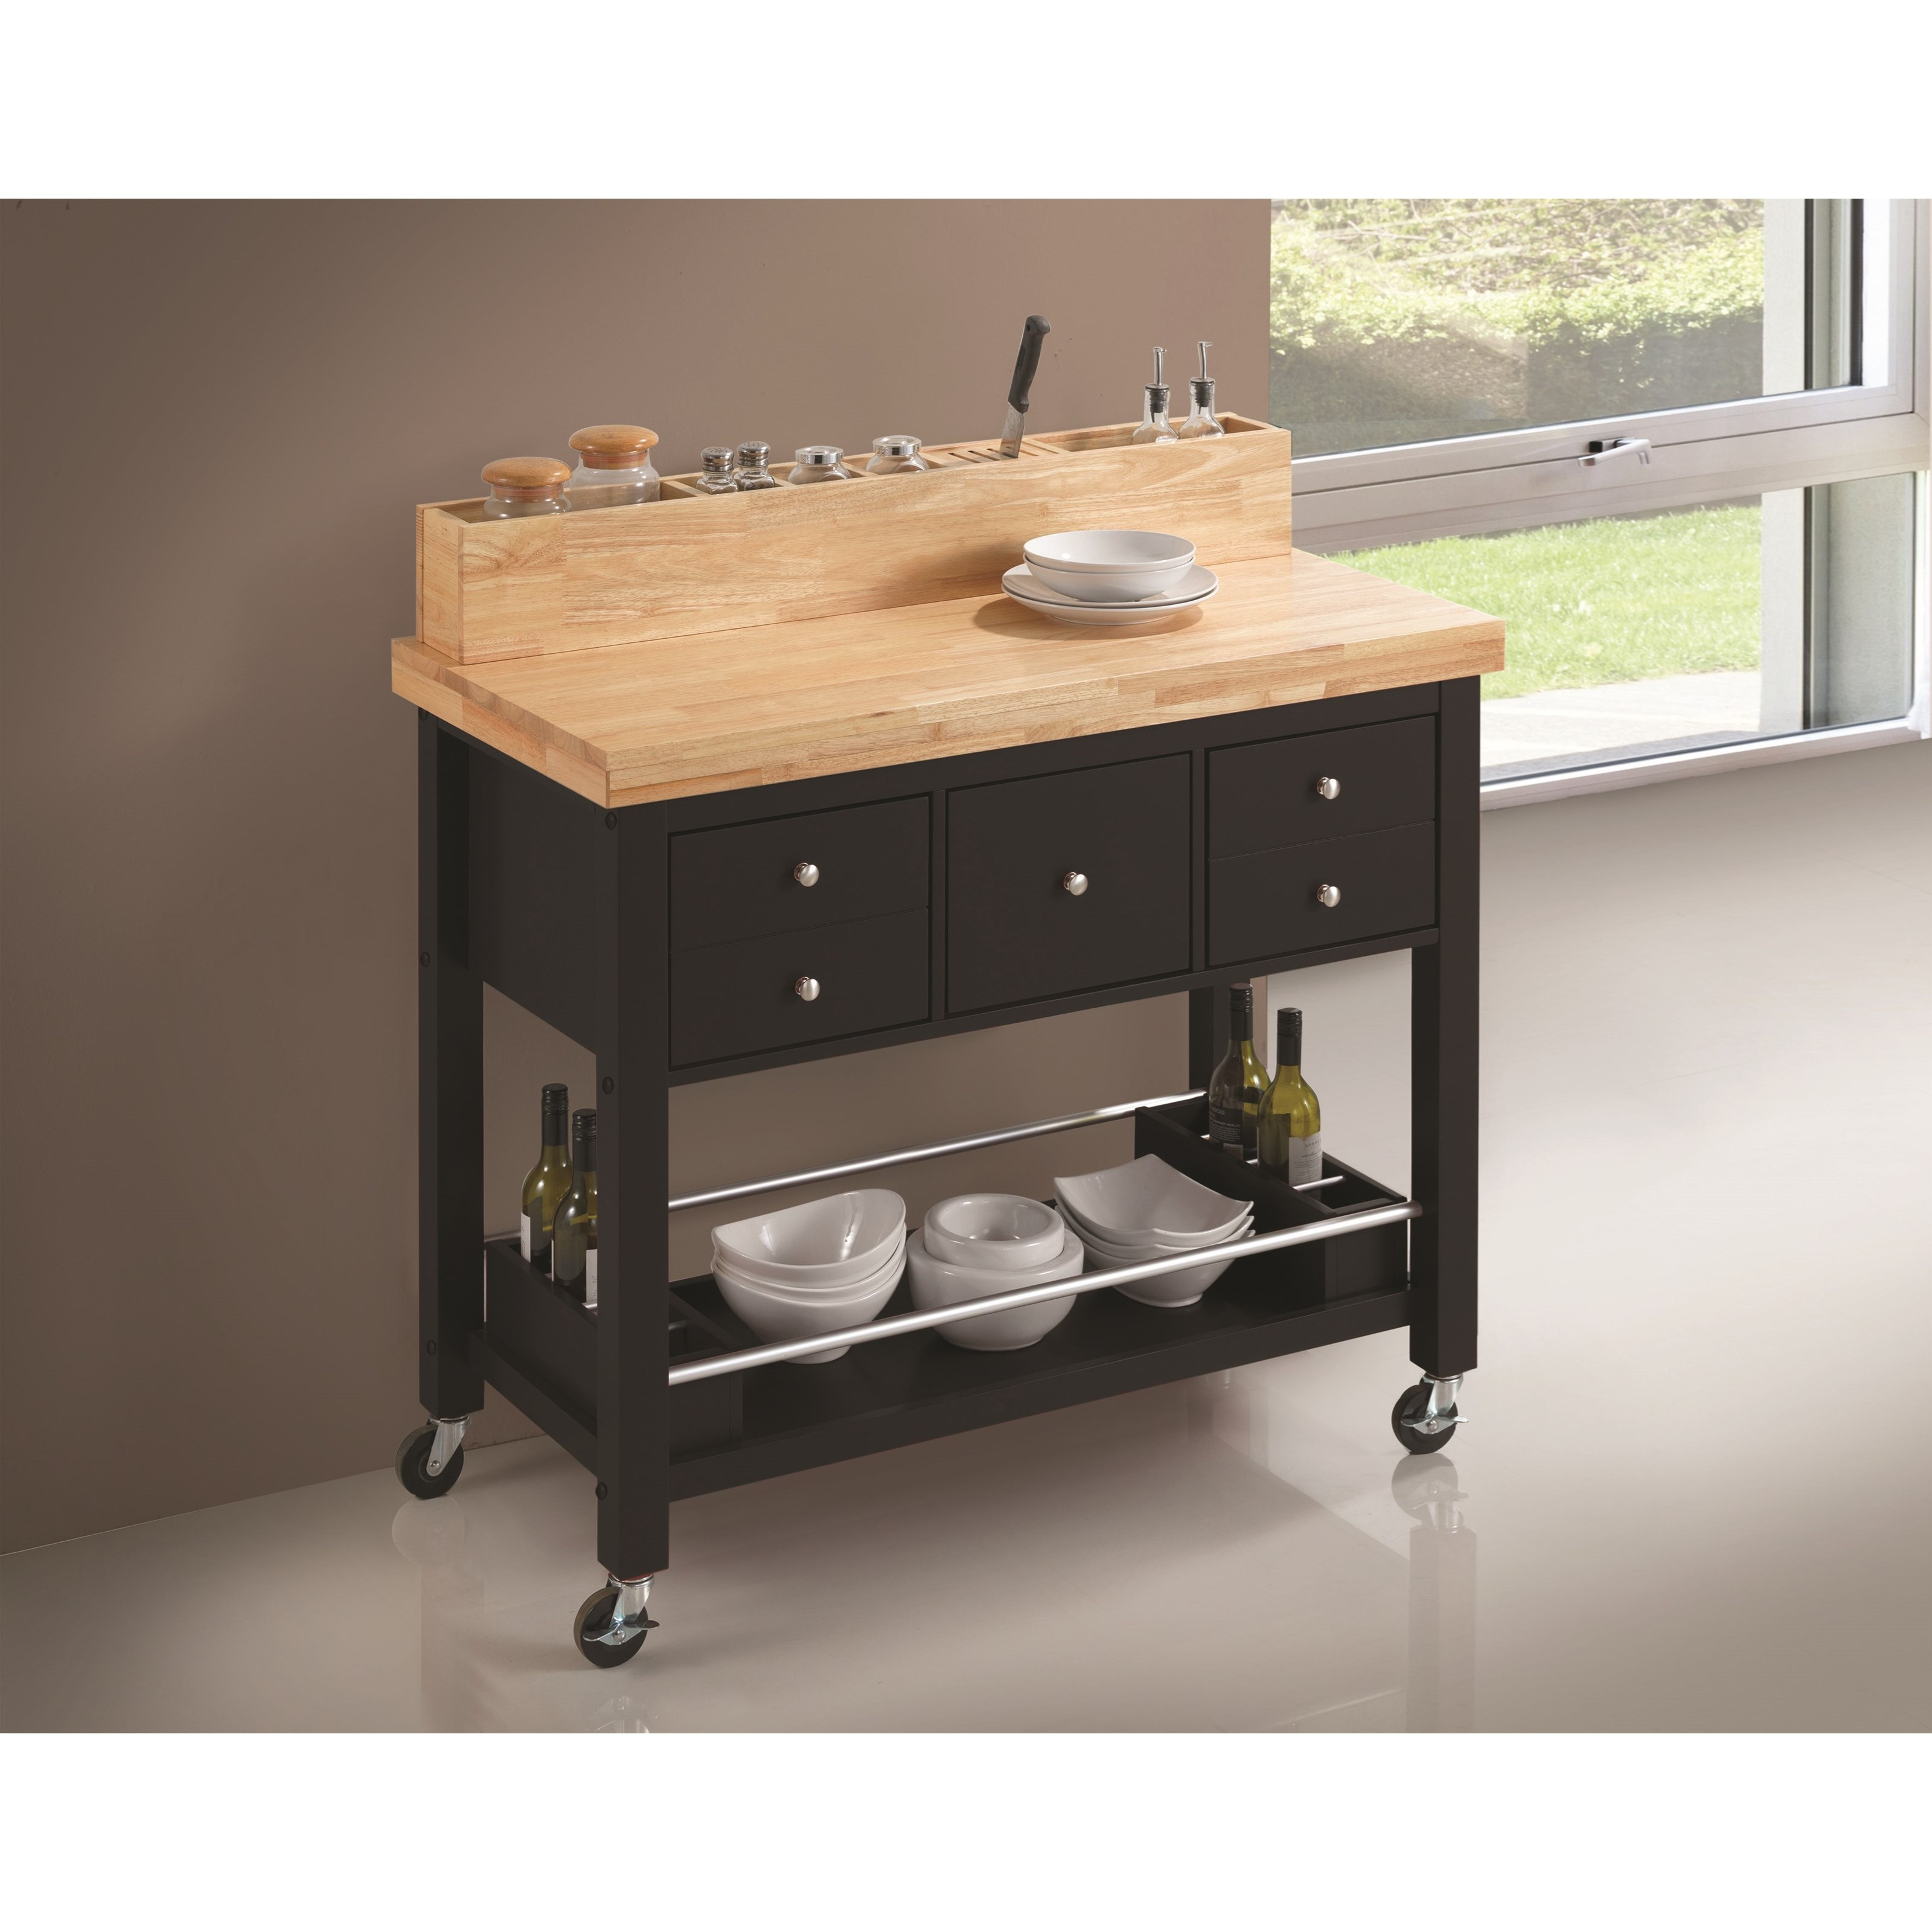 Coaster Kitchen Carts Kitchen Island - Item Number: 102668